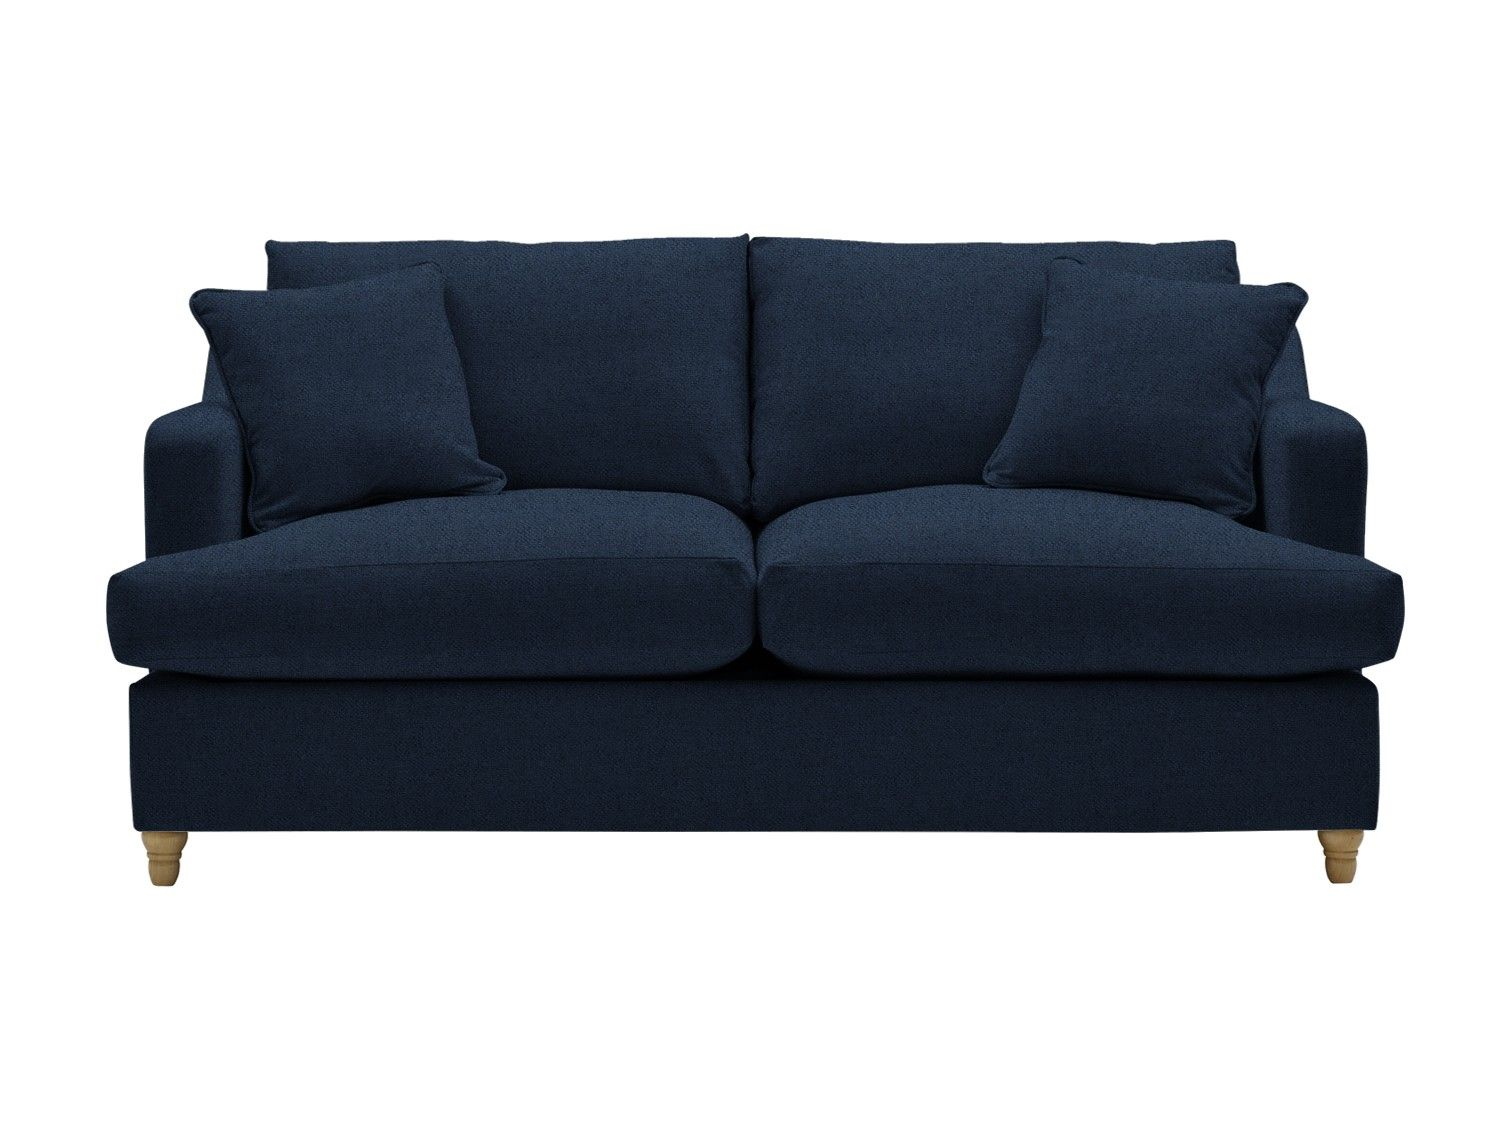 The Atworth 3 Seater Sofa Willow Amp Hall House